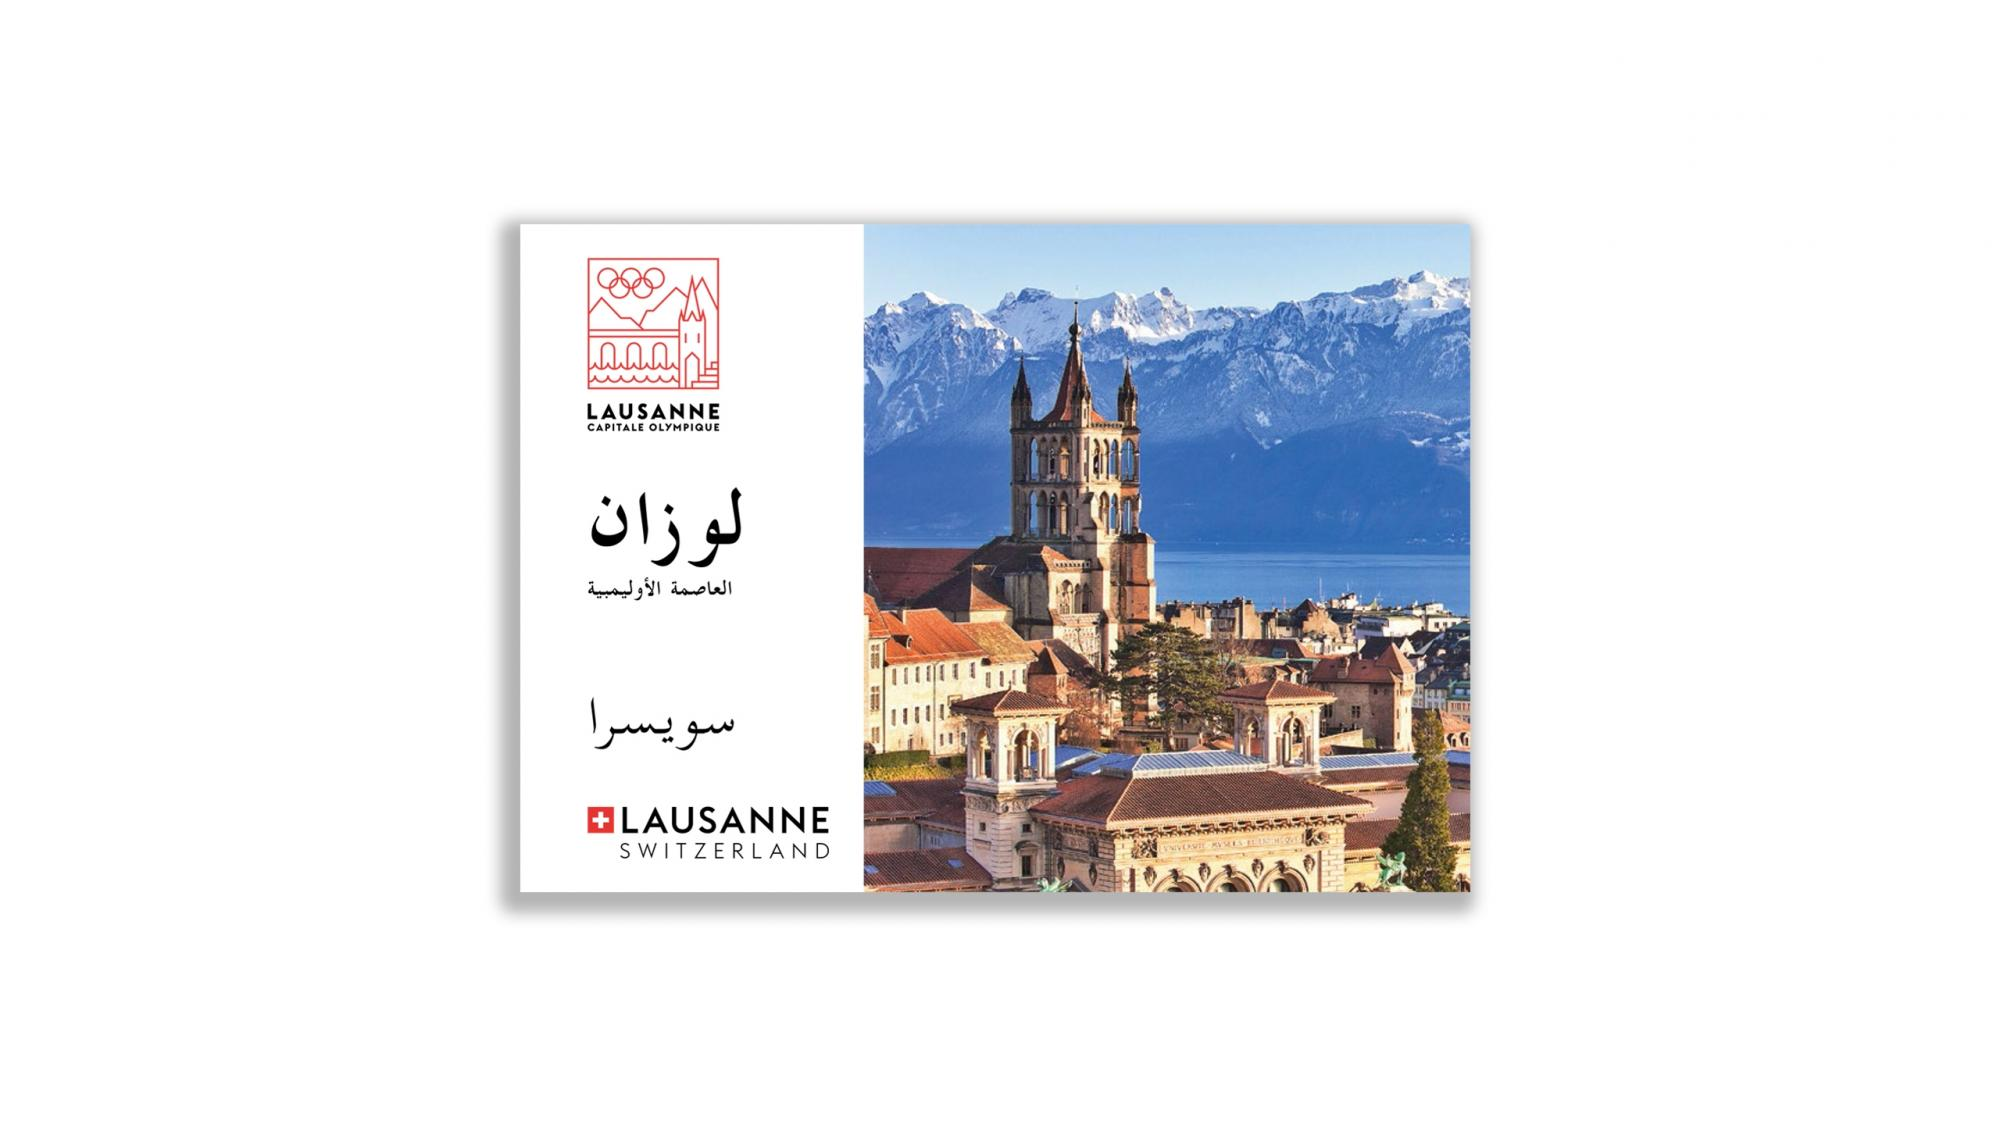 Lausanne Experience